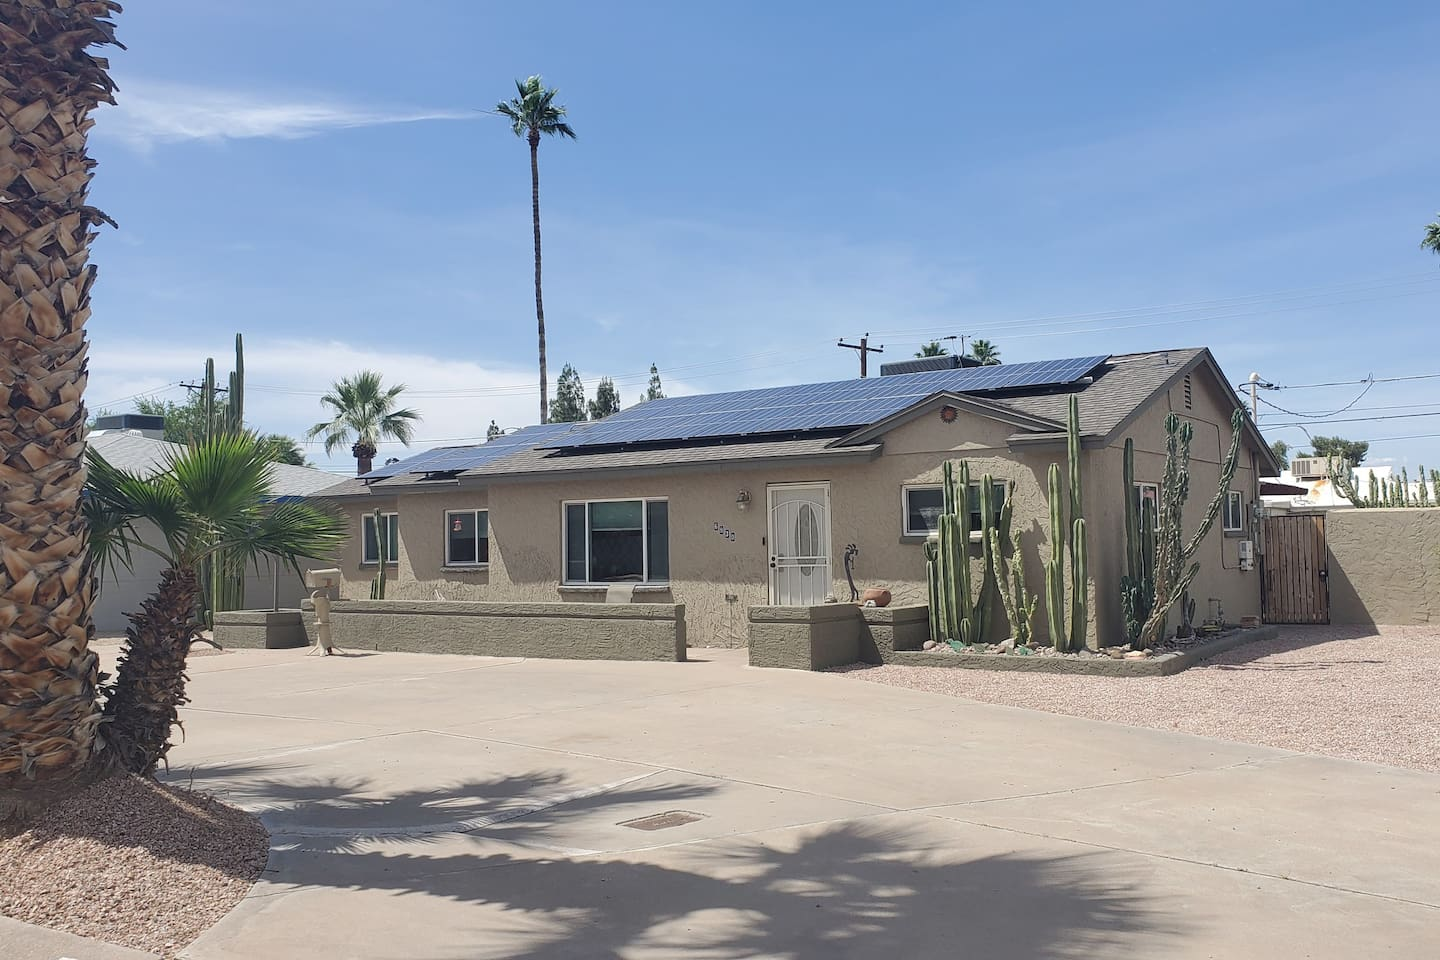 Freshly painted Ranch house, desert landscape and plenty of parking